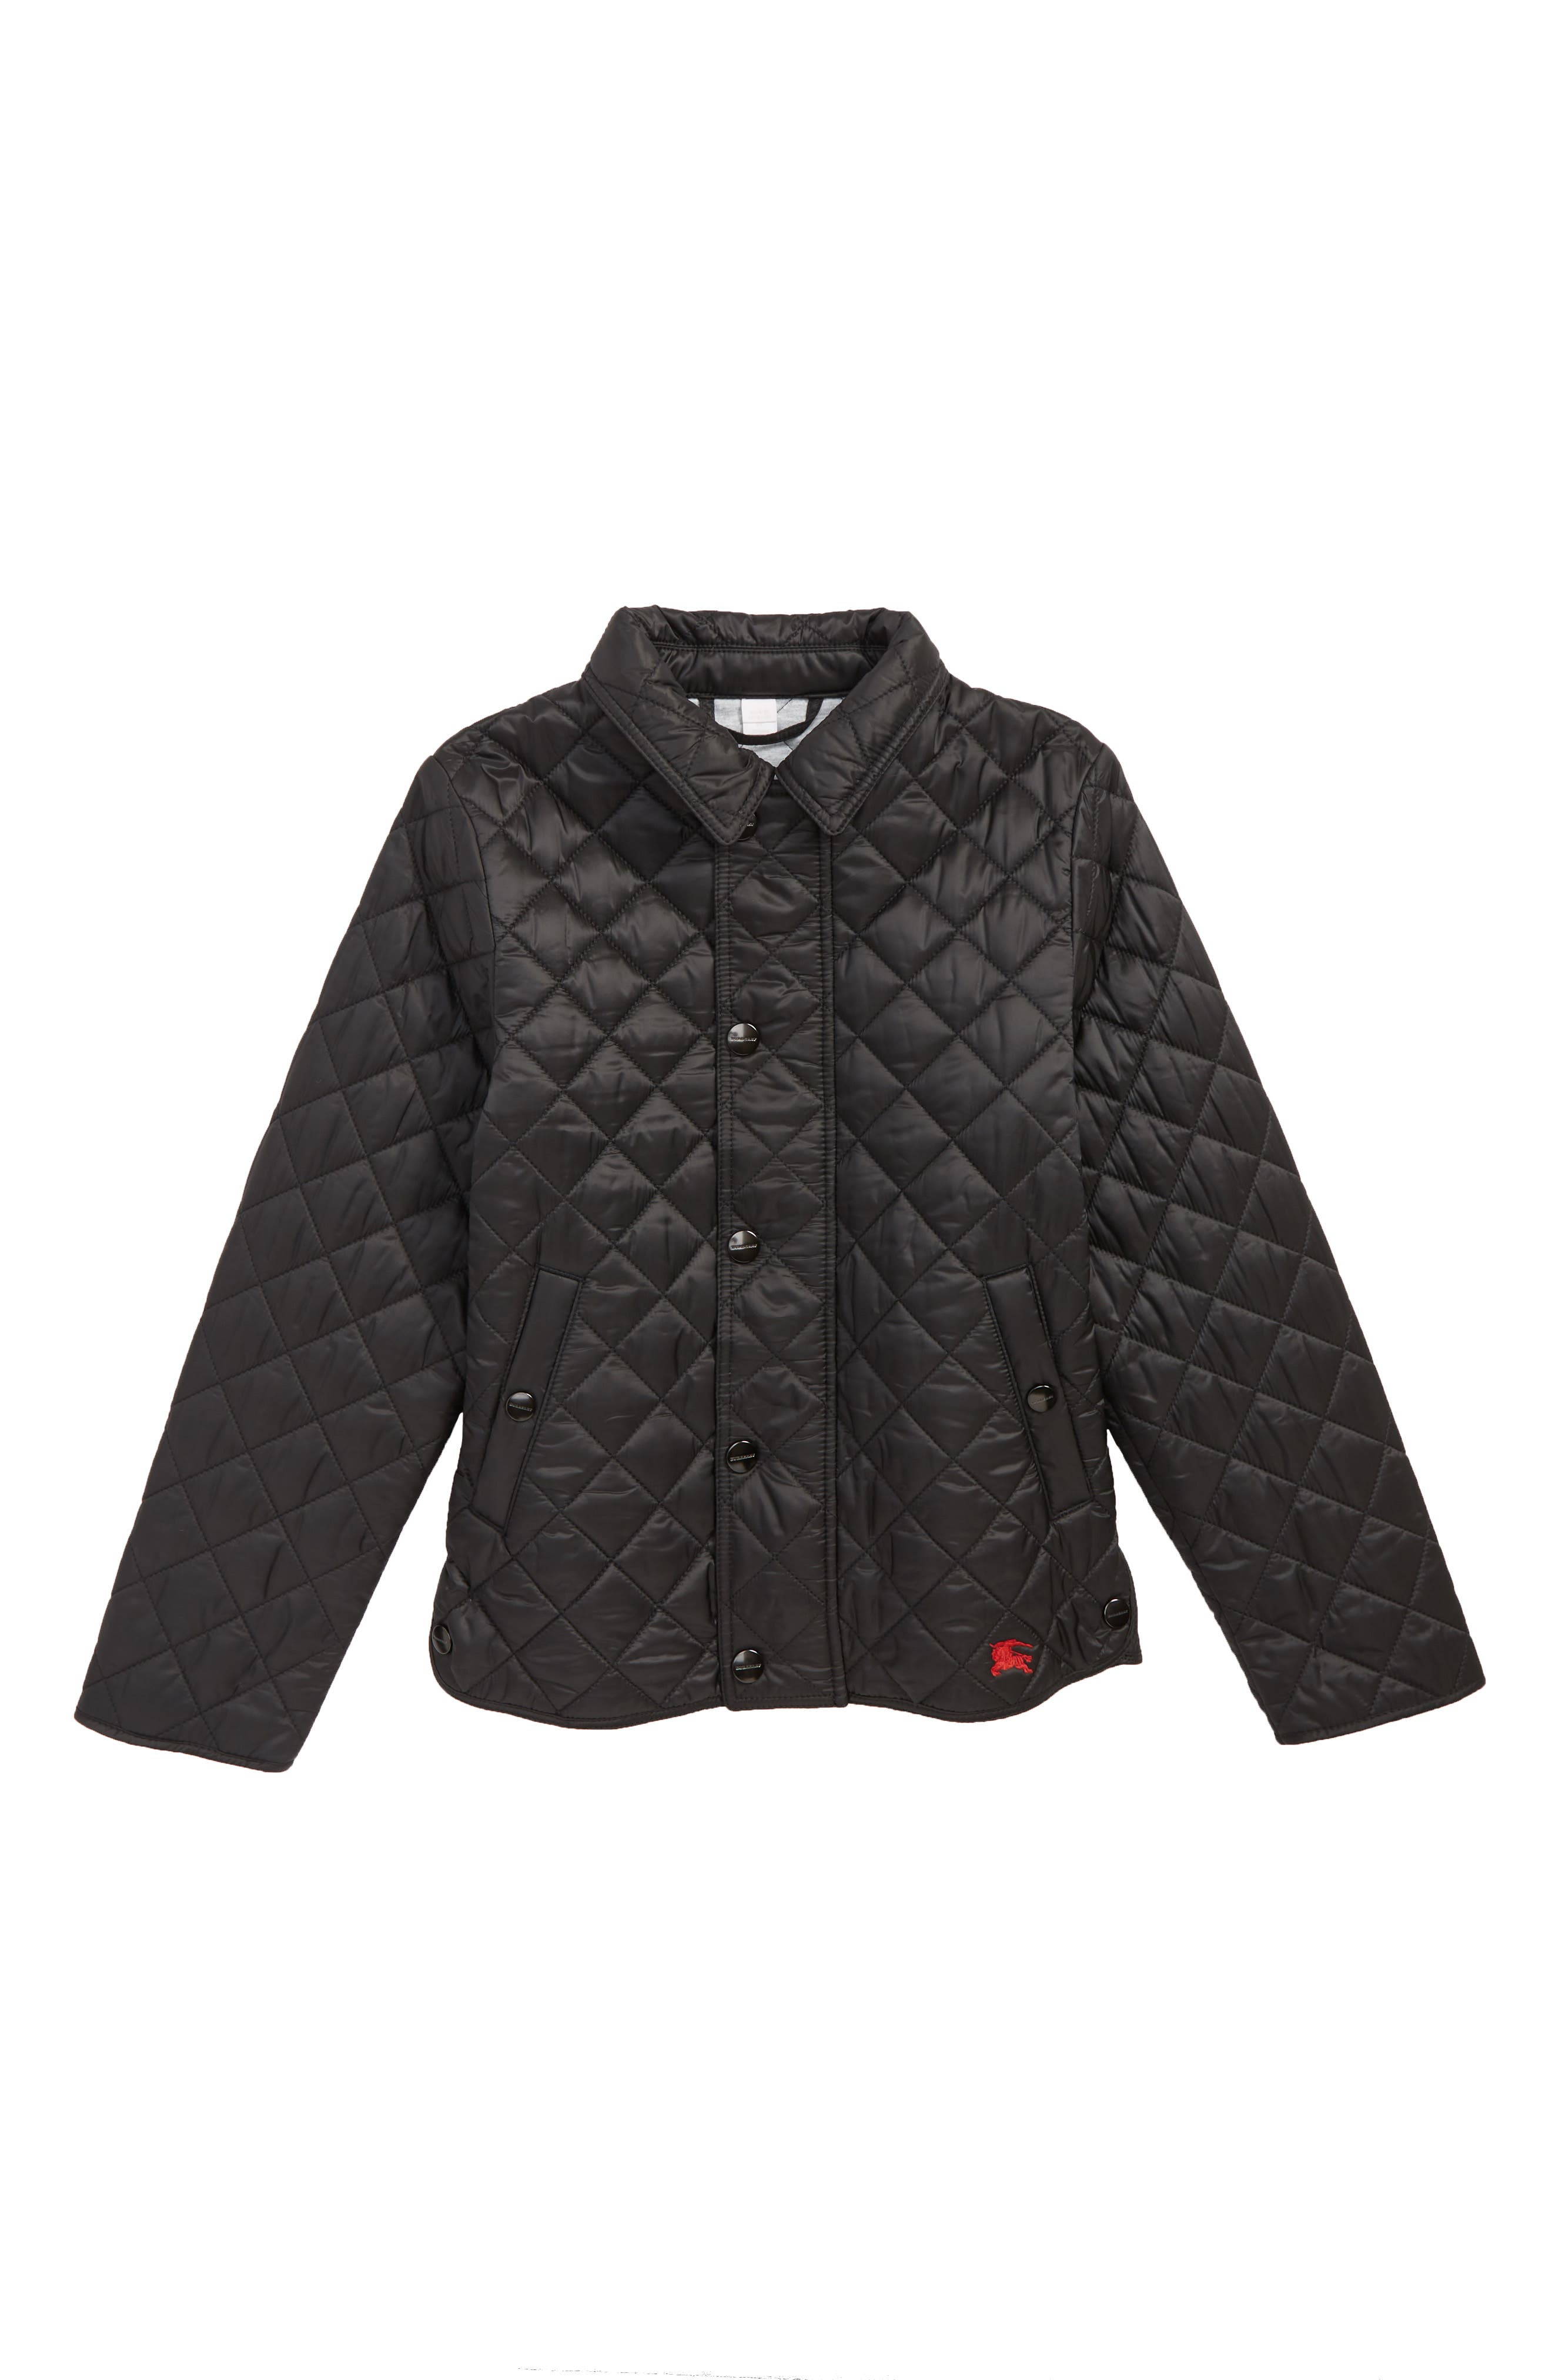 BURBERRY, Lyle Diamond Quilted Jacket, Main thumbnail 1, color, BLACK